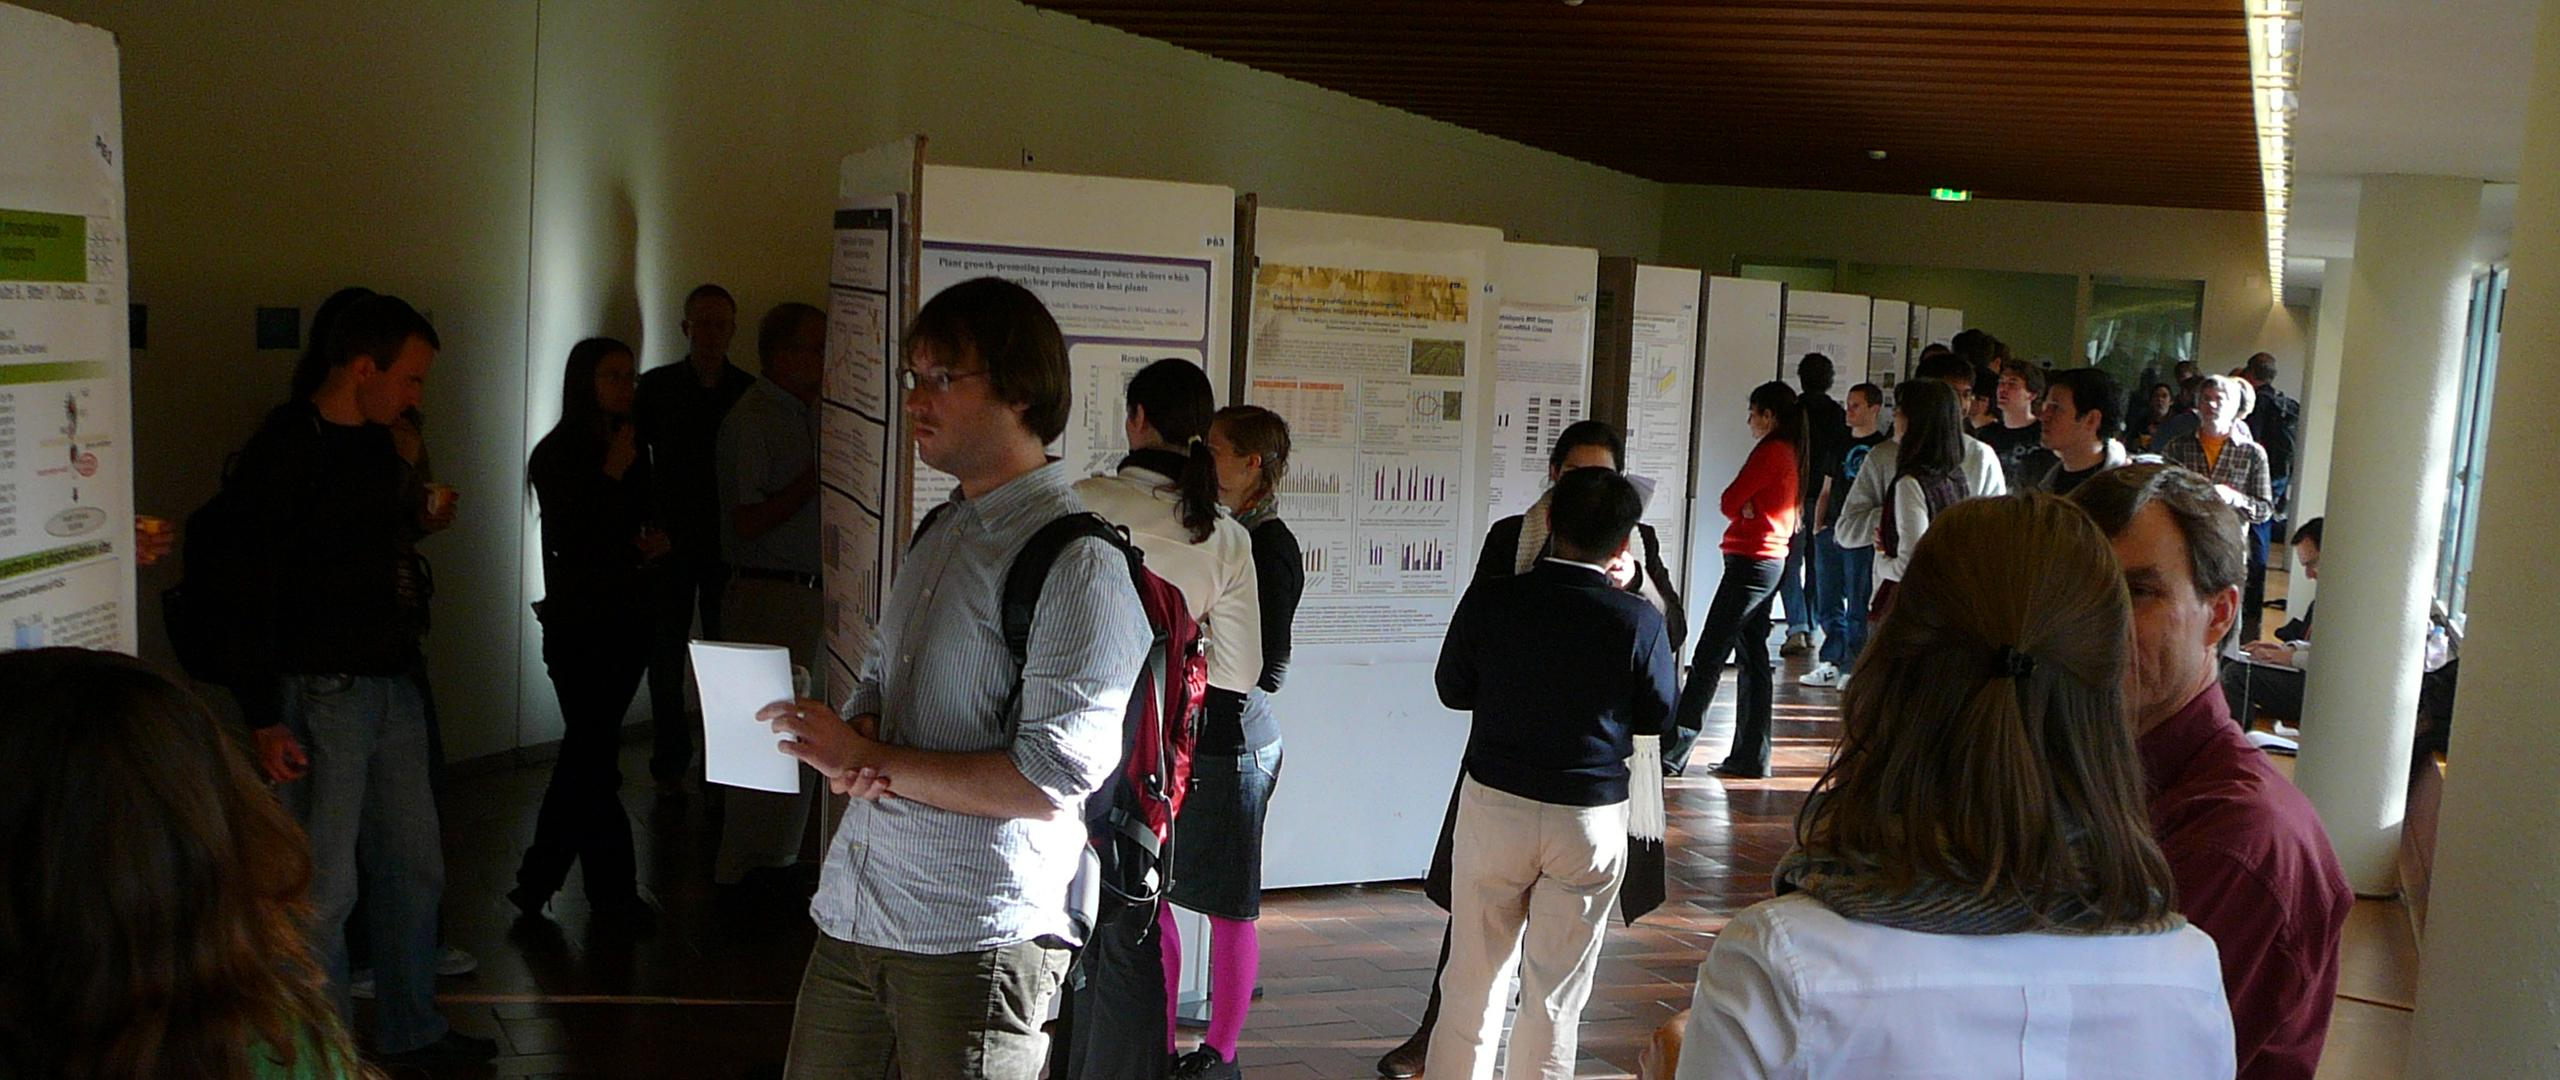 conference poster session